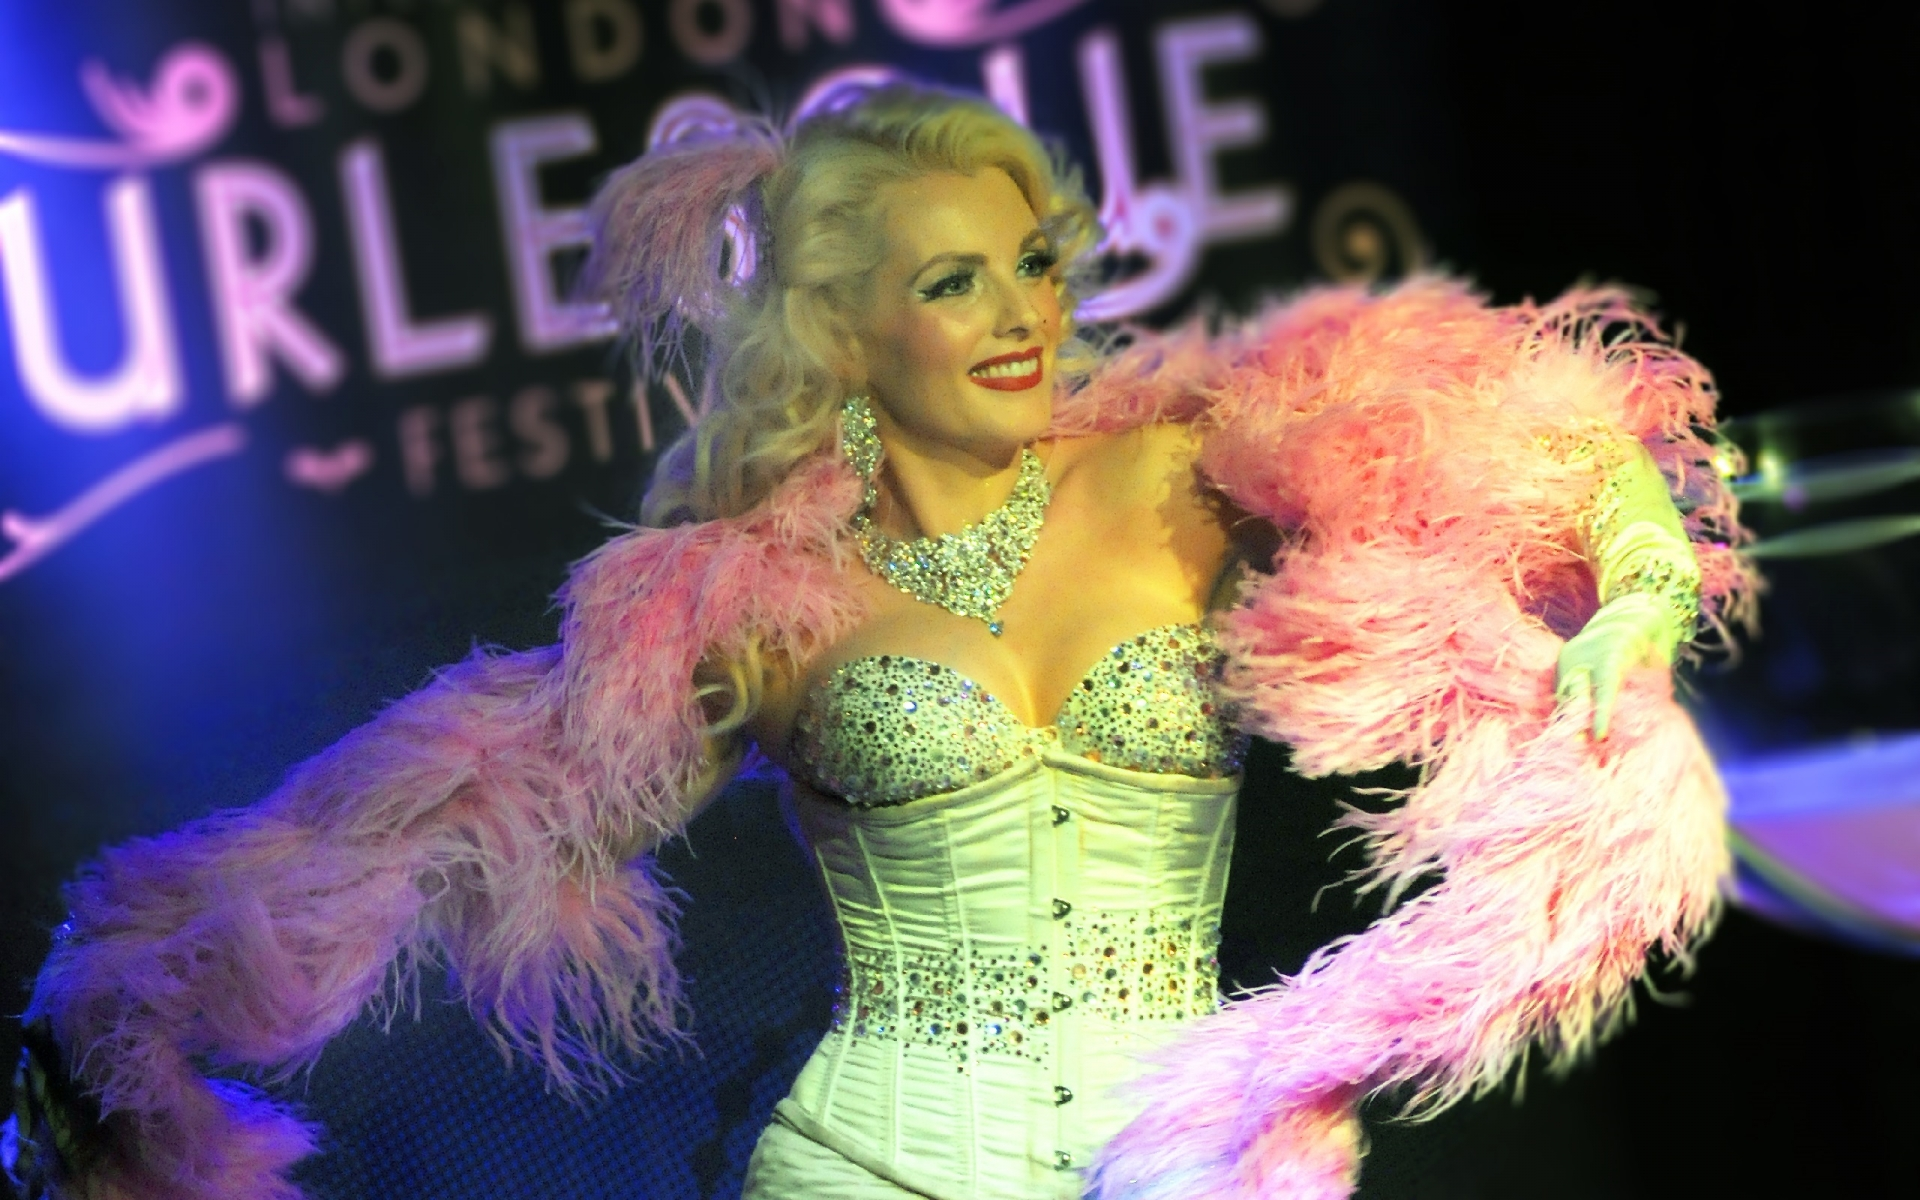 The London Burlesque Festival is the centerpiece of all burlesque festivals and for performers too.